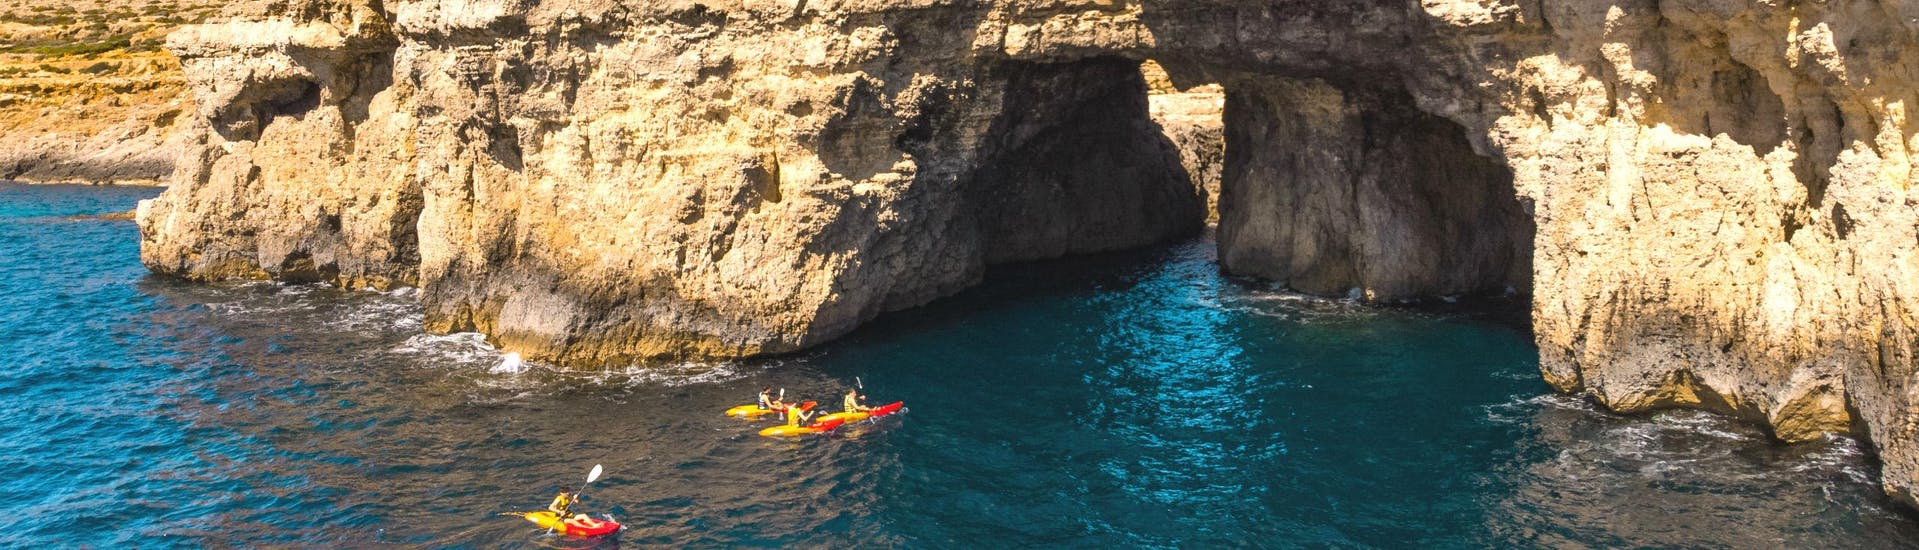 A group of people is paddling into a cave while kayaking in Malta.